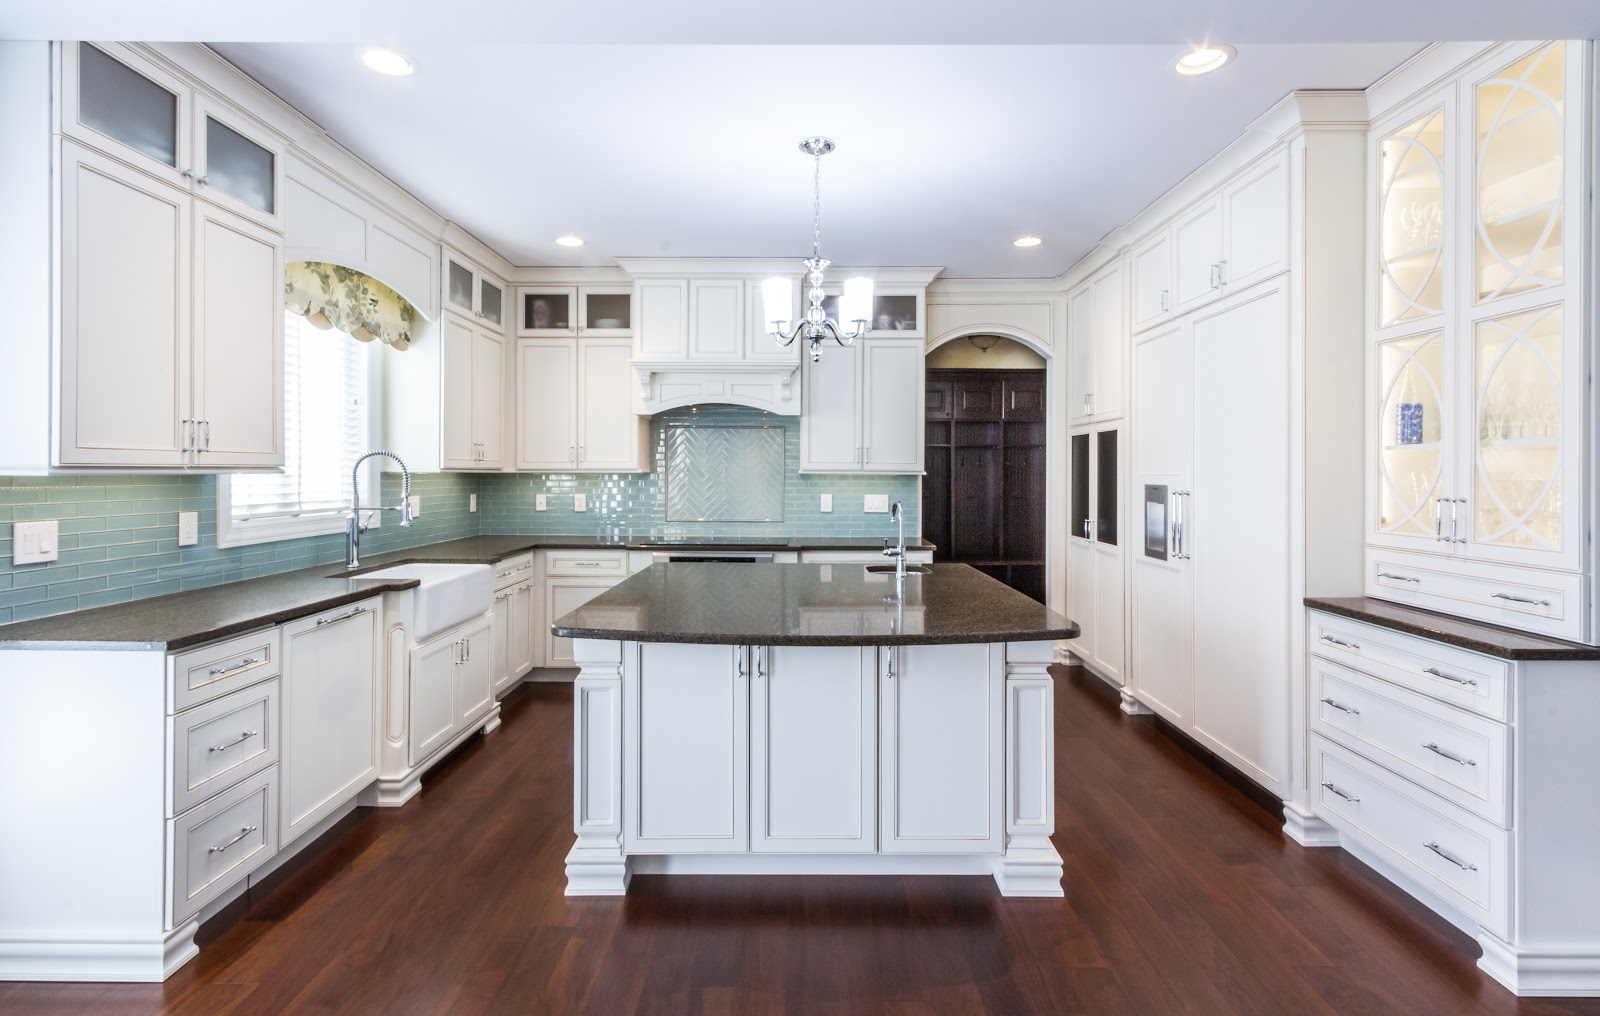 White kitchen with dark countertops and seafood polished glass  tile backsplash. Detailed glass cabinet fronts and arched entry warty with lots of natural light.